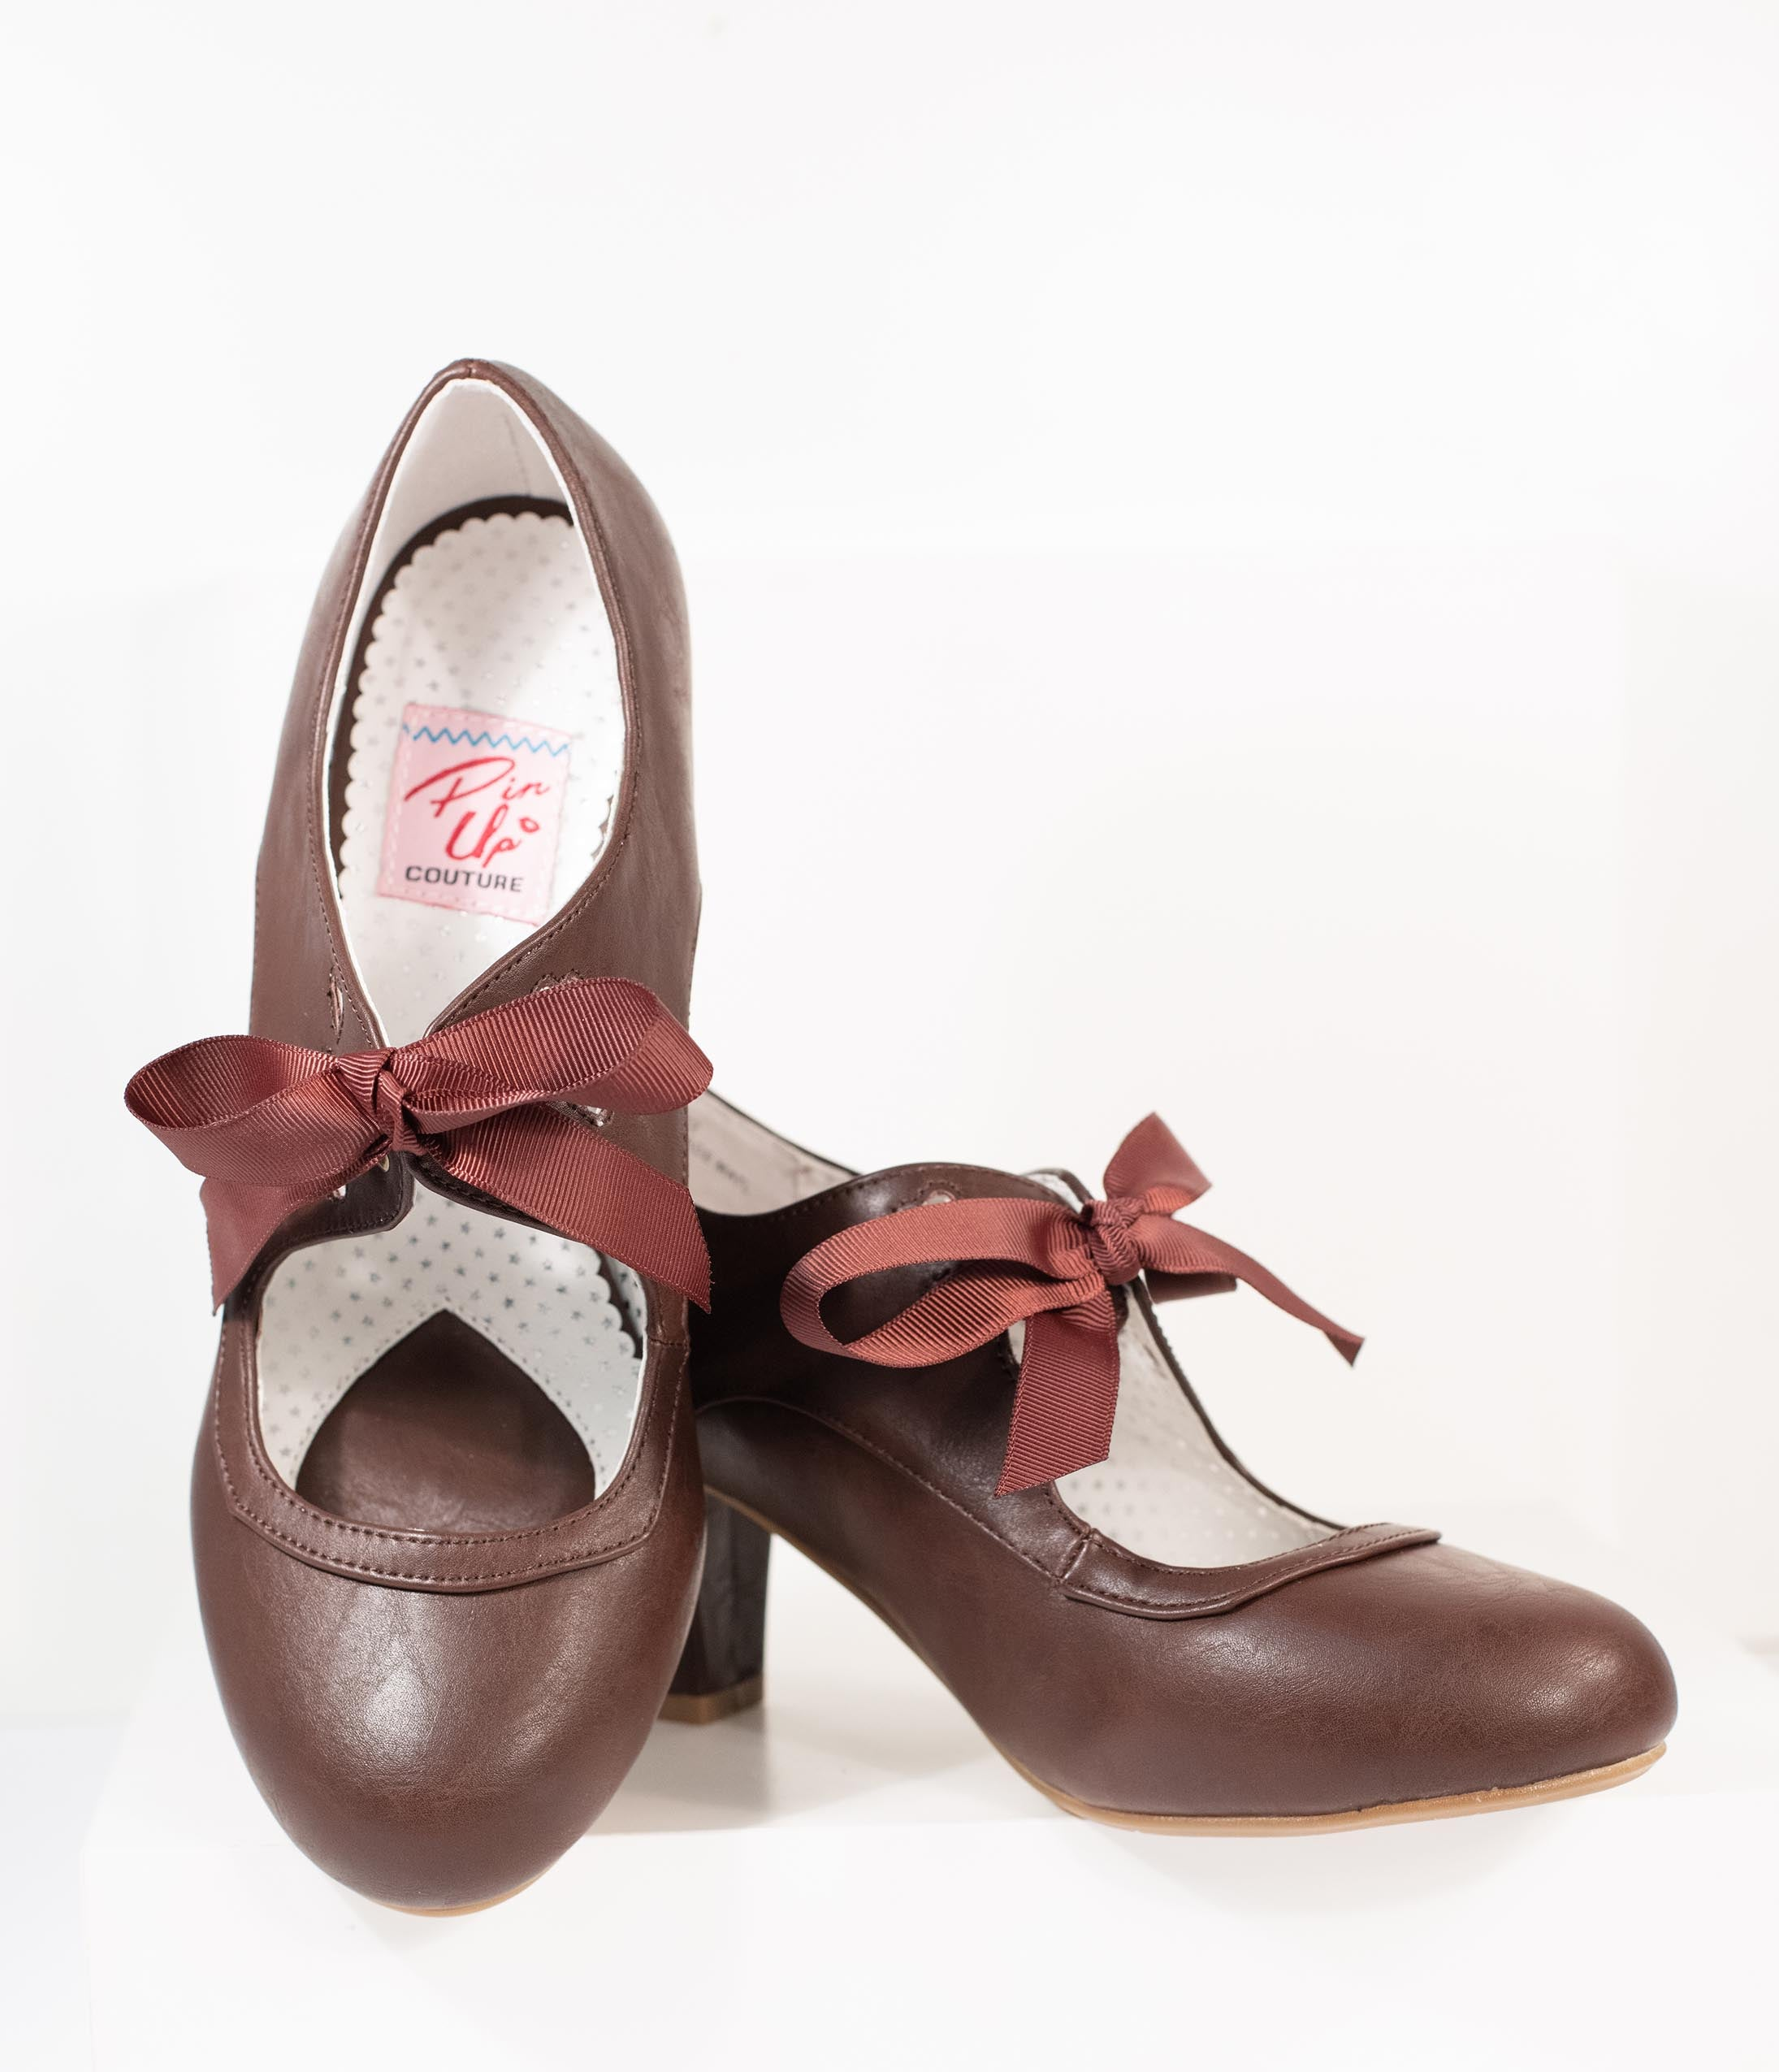 Vintage Shoes, Vintage Style Shoes Vintage Style Dark Brown Leatherette Wiggle Bow Heels $66.00 AT vintagedancer.com